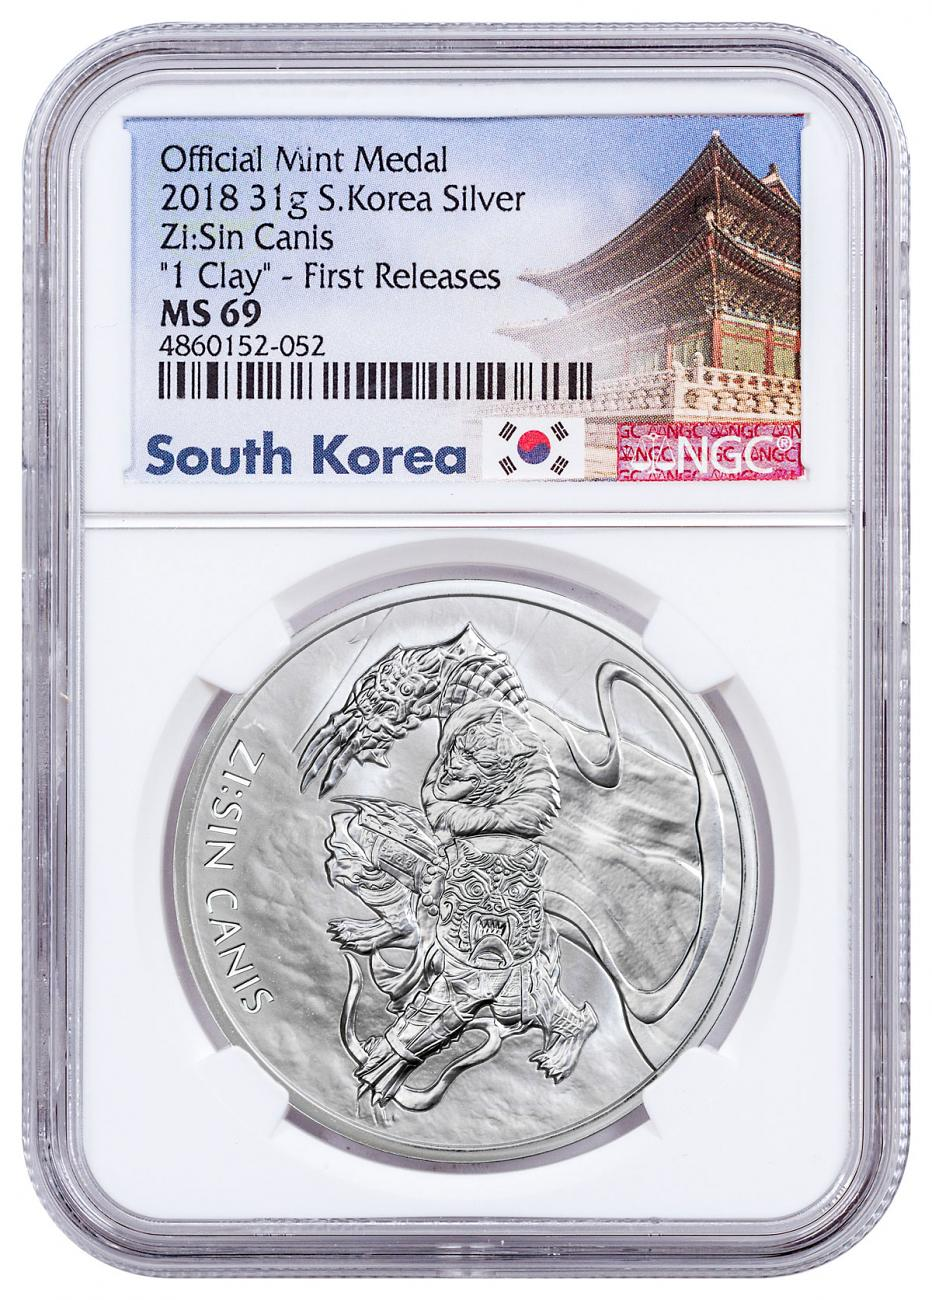 2018 South Korea ZI:SIN Canis Silver Medal NGC MS69 South Korea Label